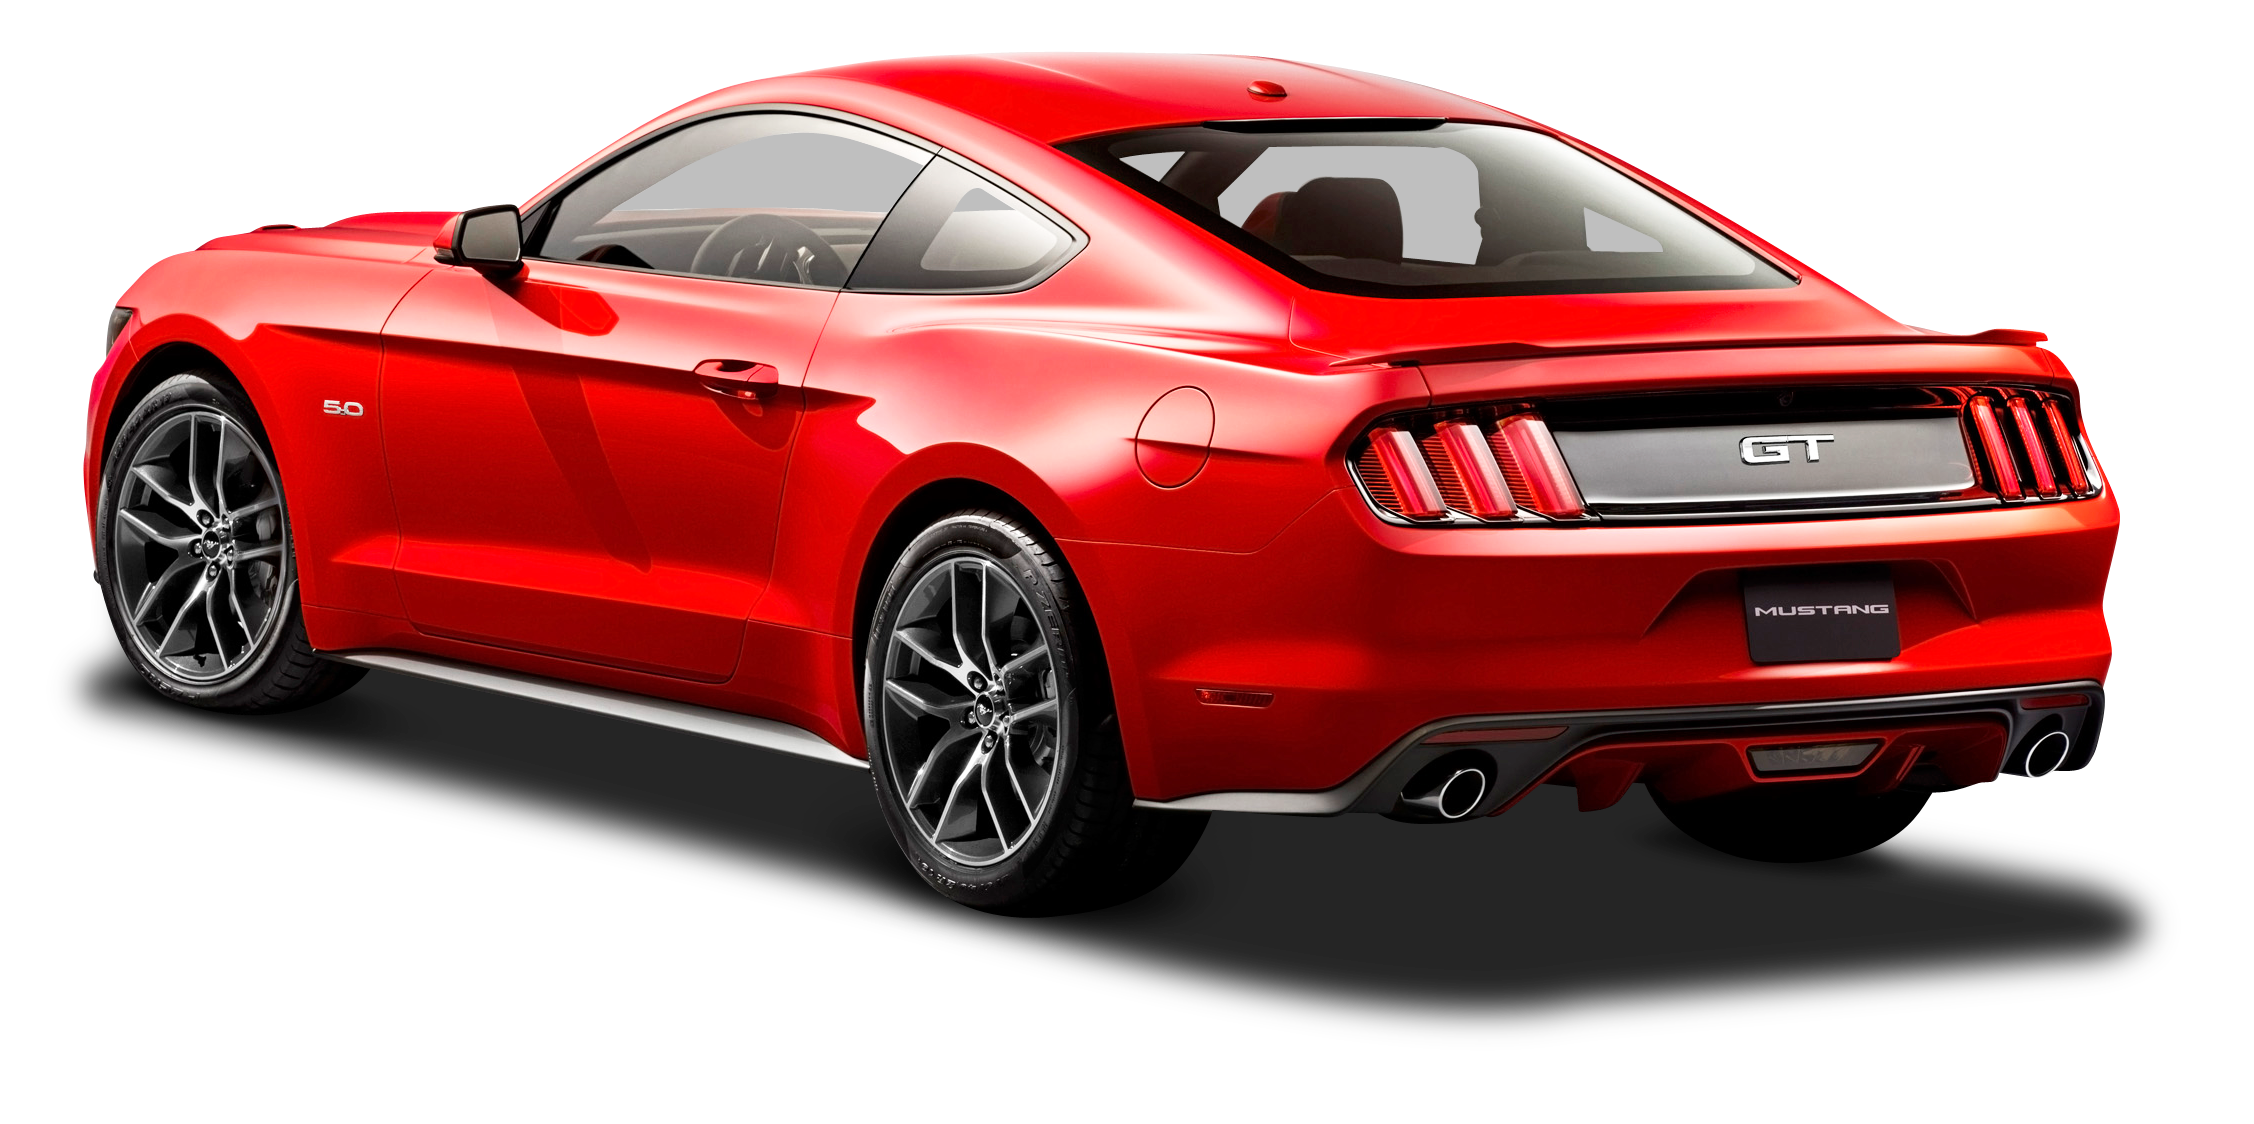 Ford mustang red car. Clipart cars back